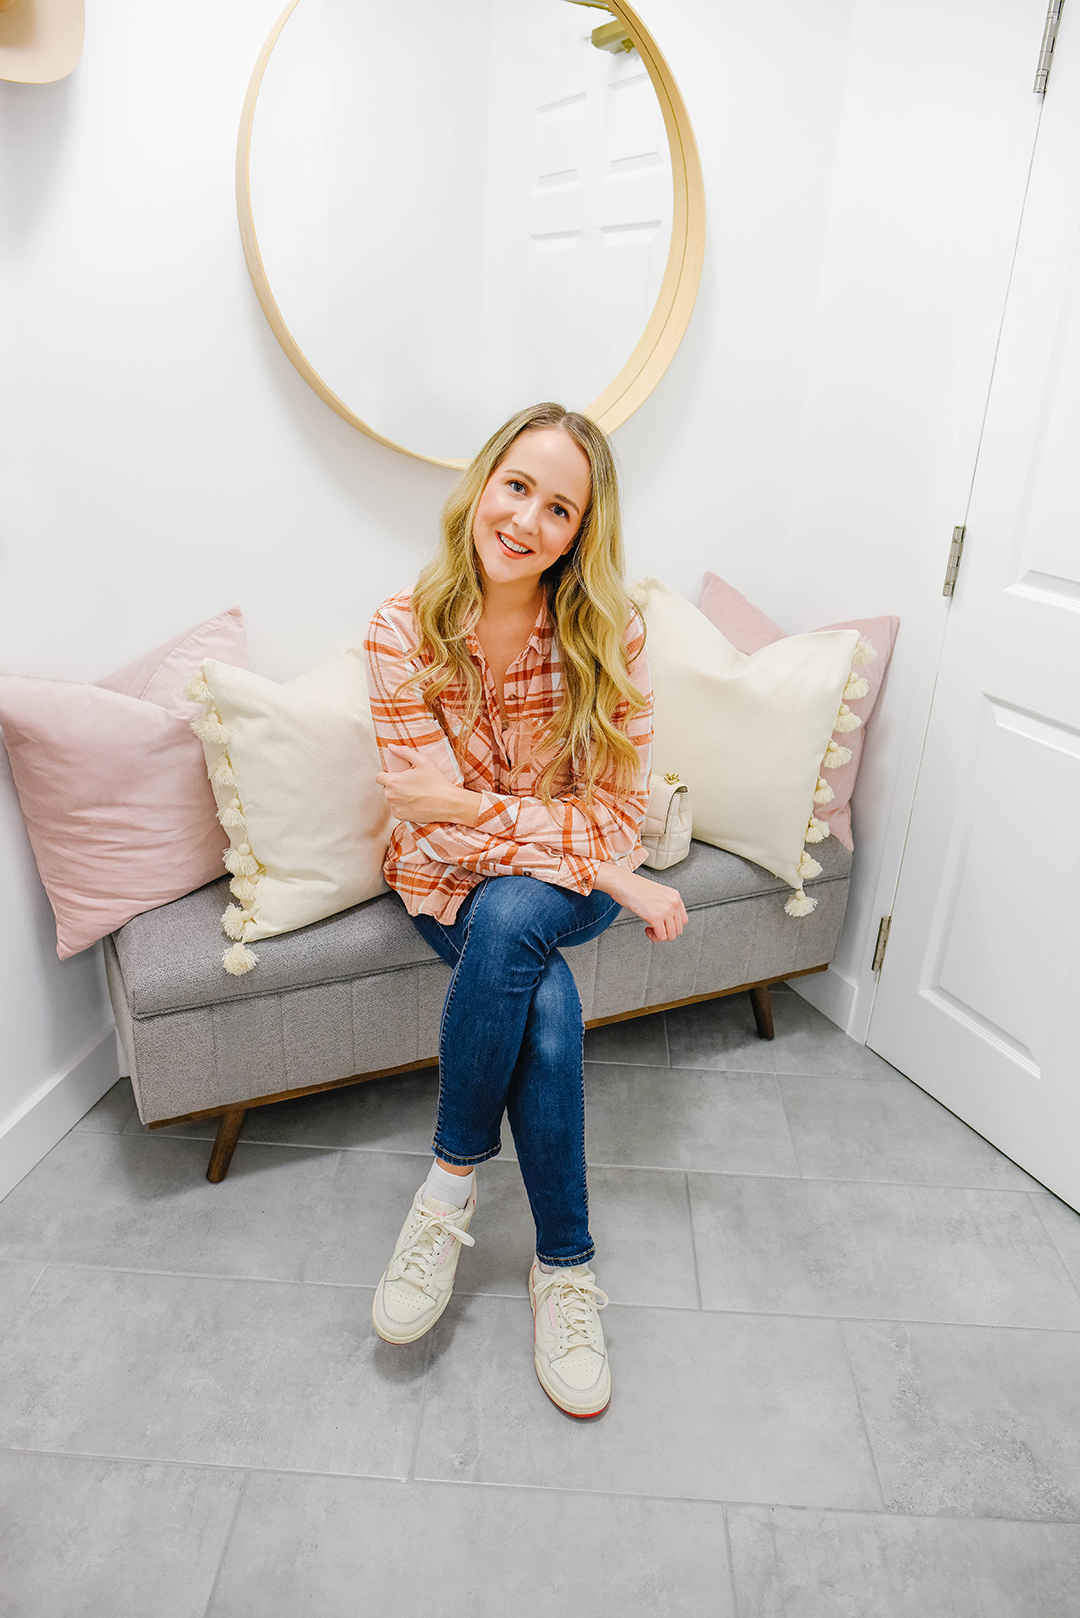 Blogger Kayla Short posed on gray bench with cozy pillows and a round mirror behind